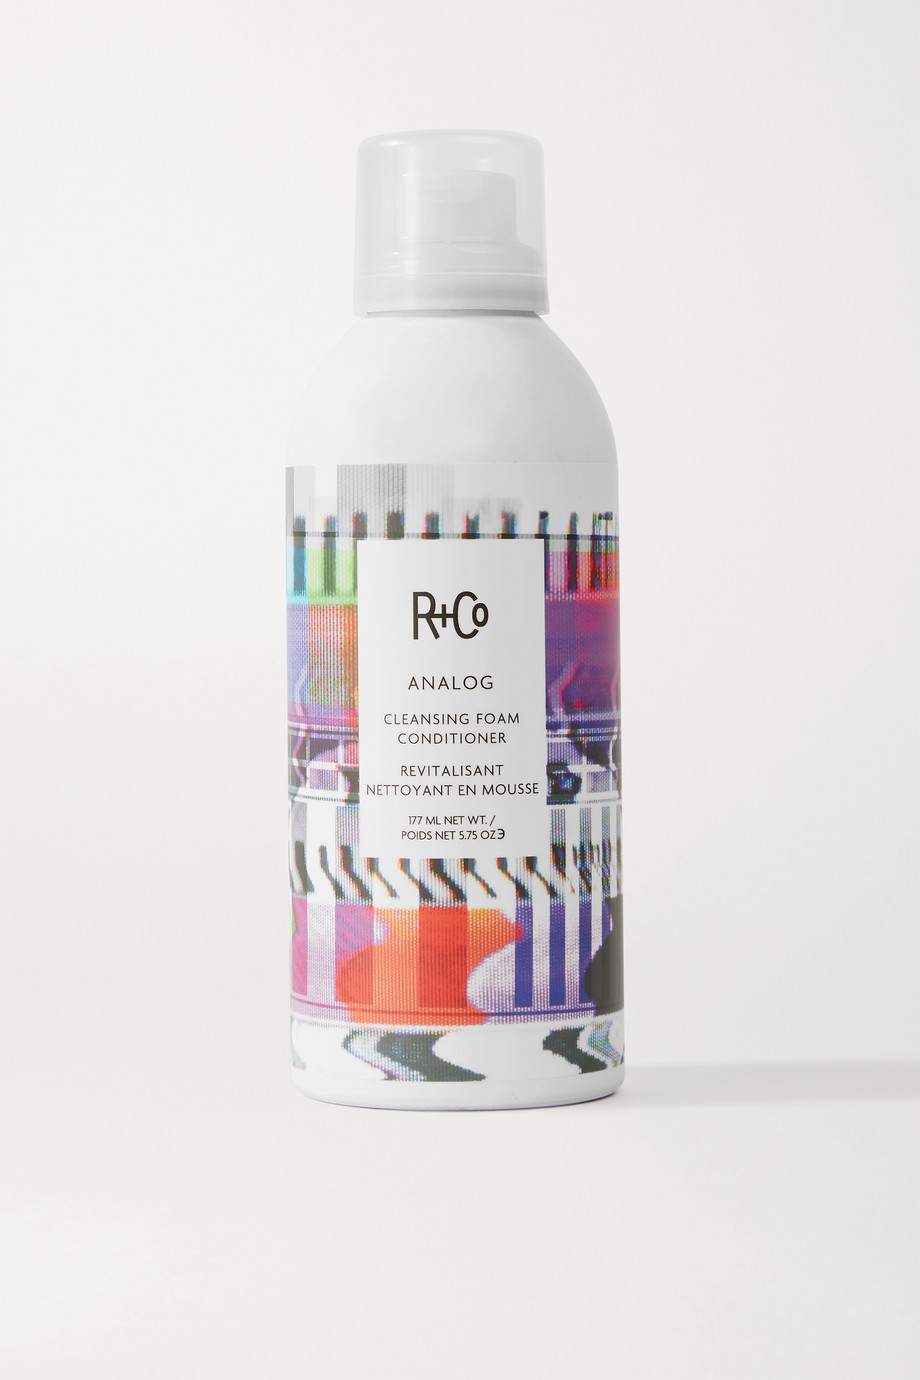 R+Co Analog Cleansing Foam Conditioner, 177ml